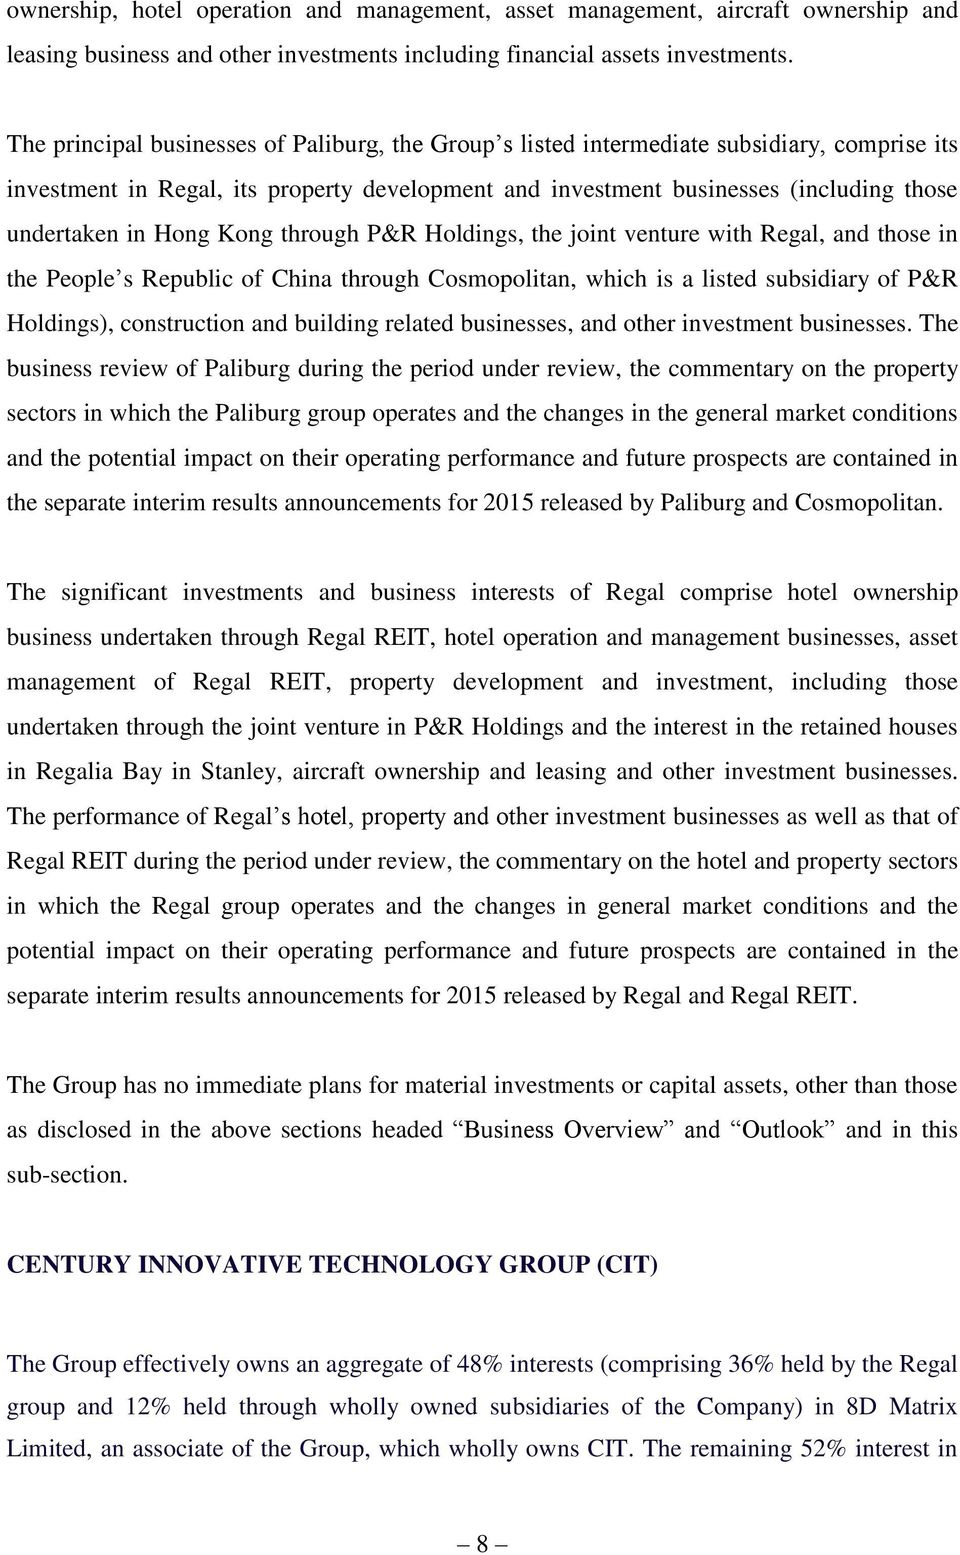 Hong Kong through P&R Holdings, the joint venture with Regal, and those in the People s Republic of China through Cosmopolitan, which is a listed subsidiary of P&R Holdings), construction and